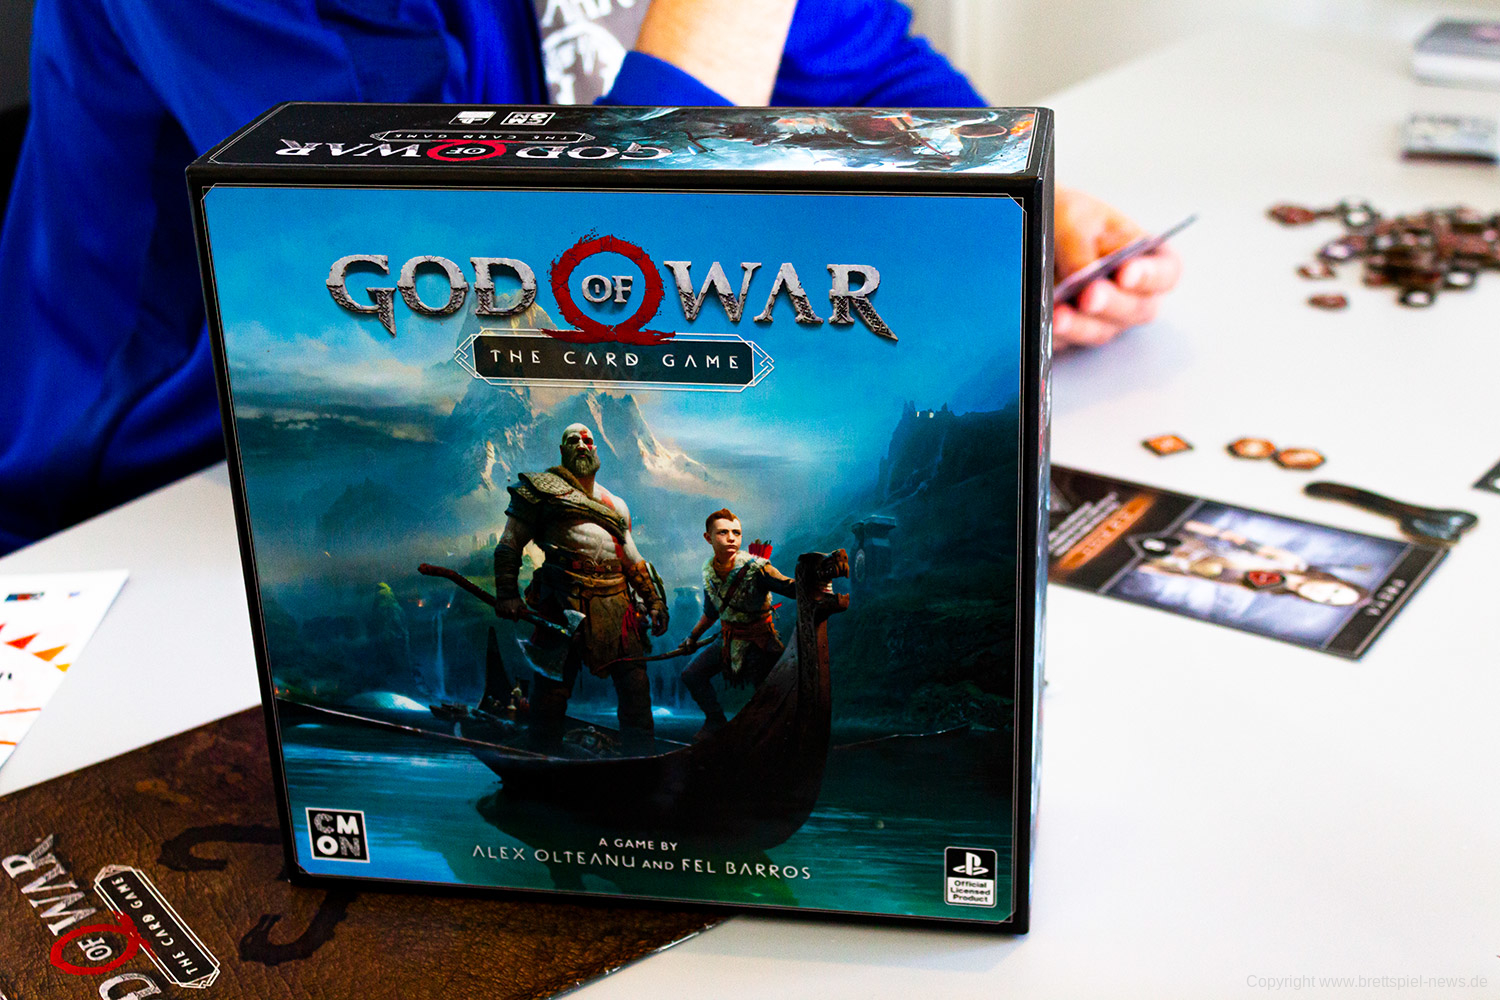 GOD OF WAR: THE CARD GAME // Prototyp – erste Bilder